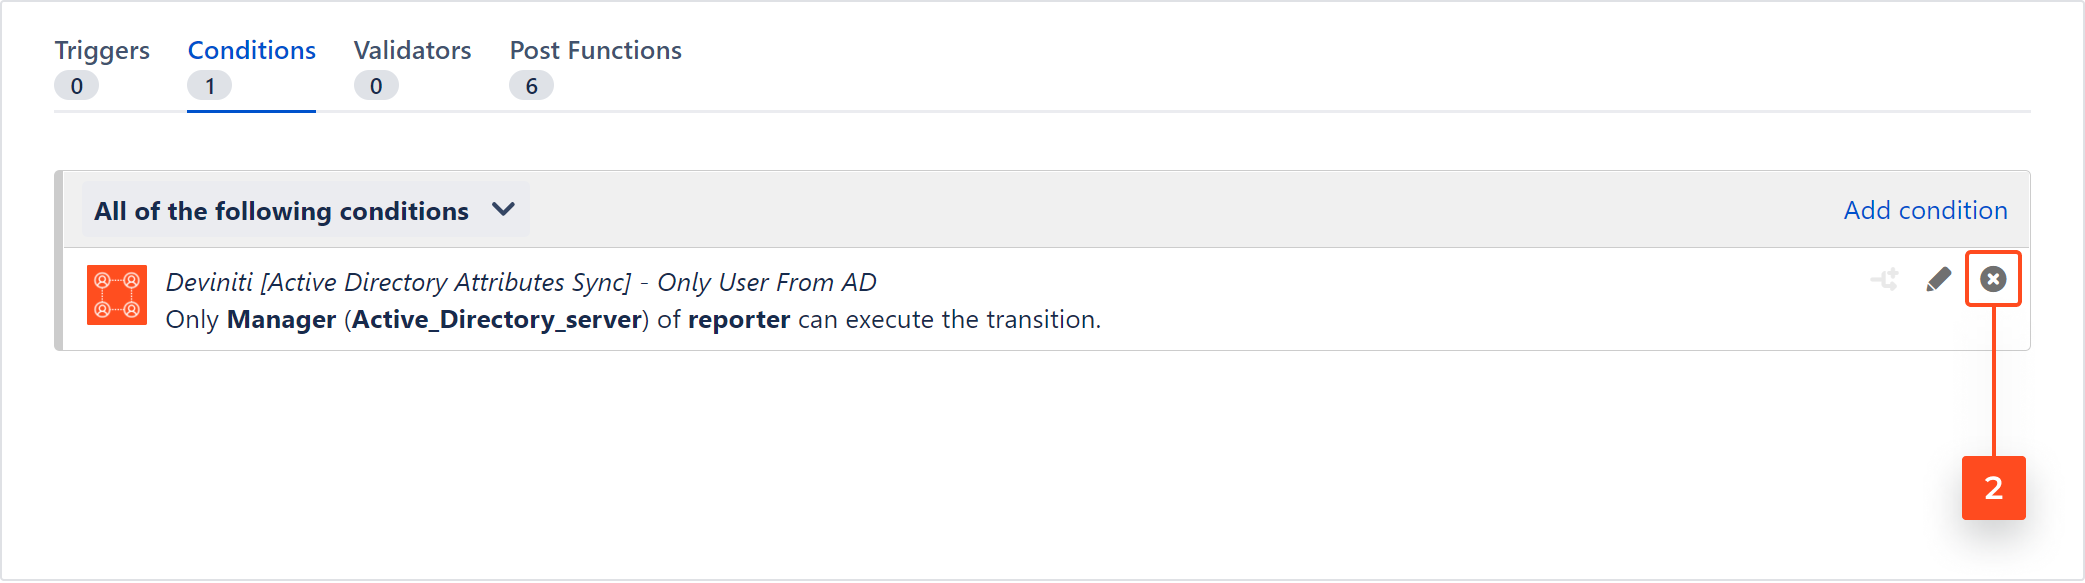 Active Directory Attributes Sync for Jira - Removing the Only User From AD condition